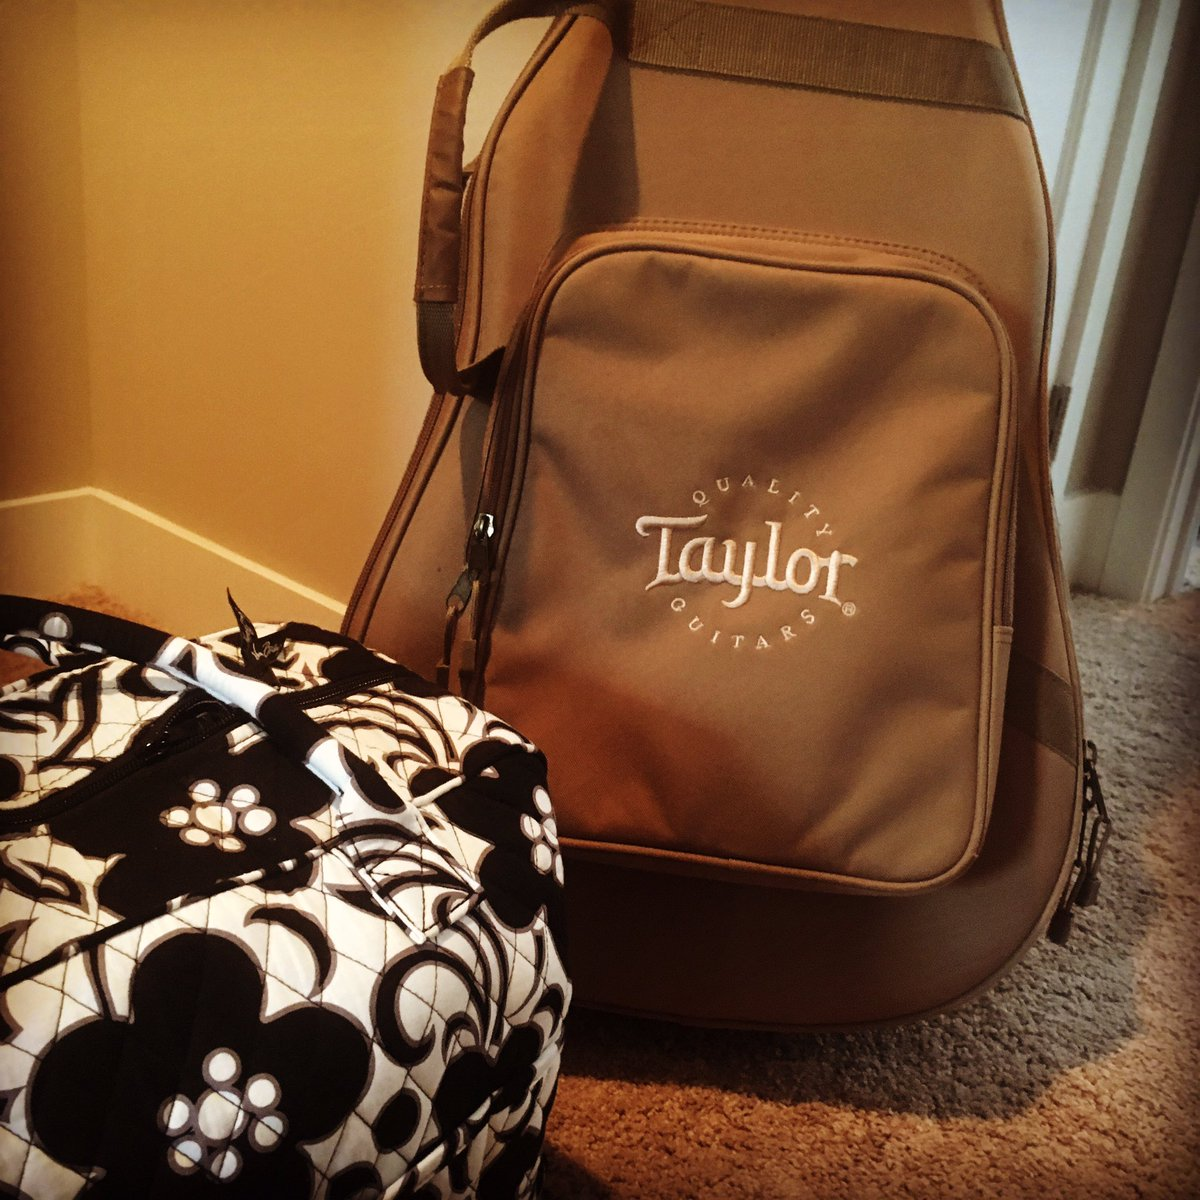 Packin the essentials to the #GreatSmokyMountains    #taylor #guitar #mountains #getaway<br>http://pic.twitter.com/wzM7e2uW2k